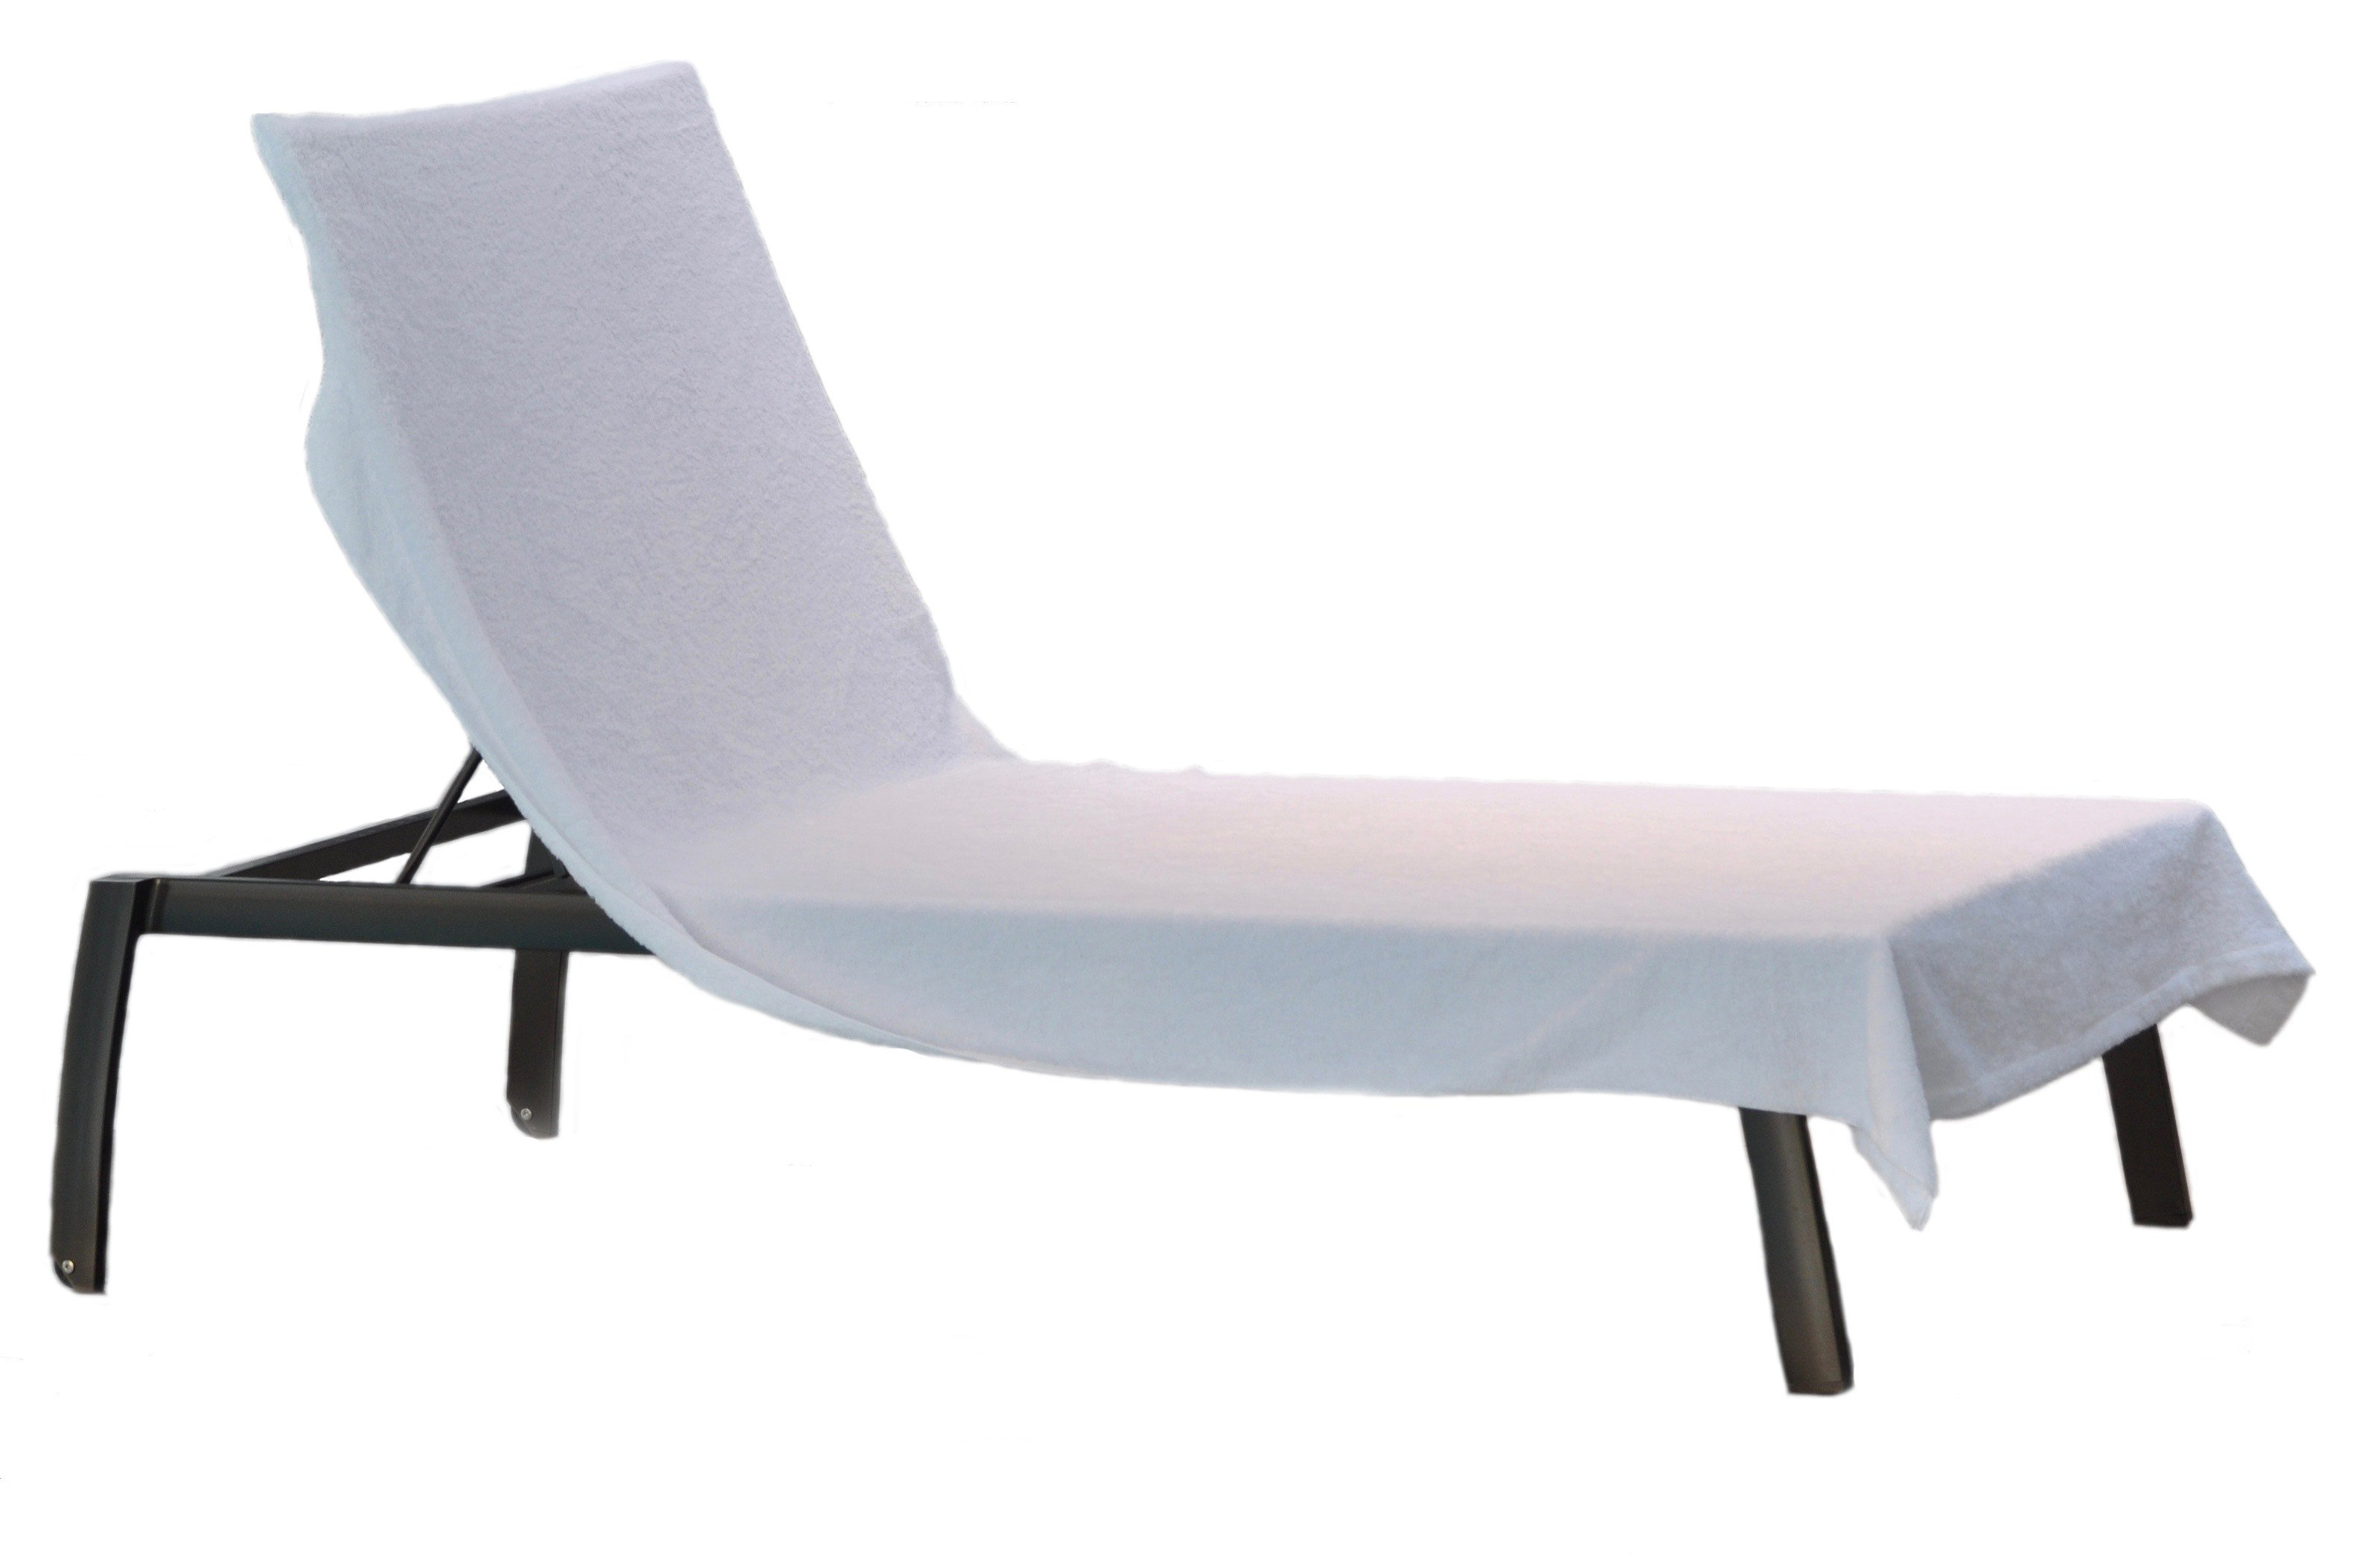 Astounding Caribbean Natural Royal Lounge Chair Cover Towel 90 X 40 100 Cotton White Caraccident5 Cool Chair Designs And Ideas Caraccident5Info